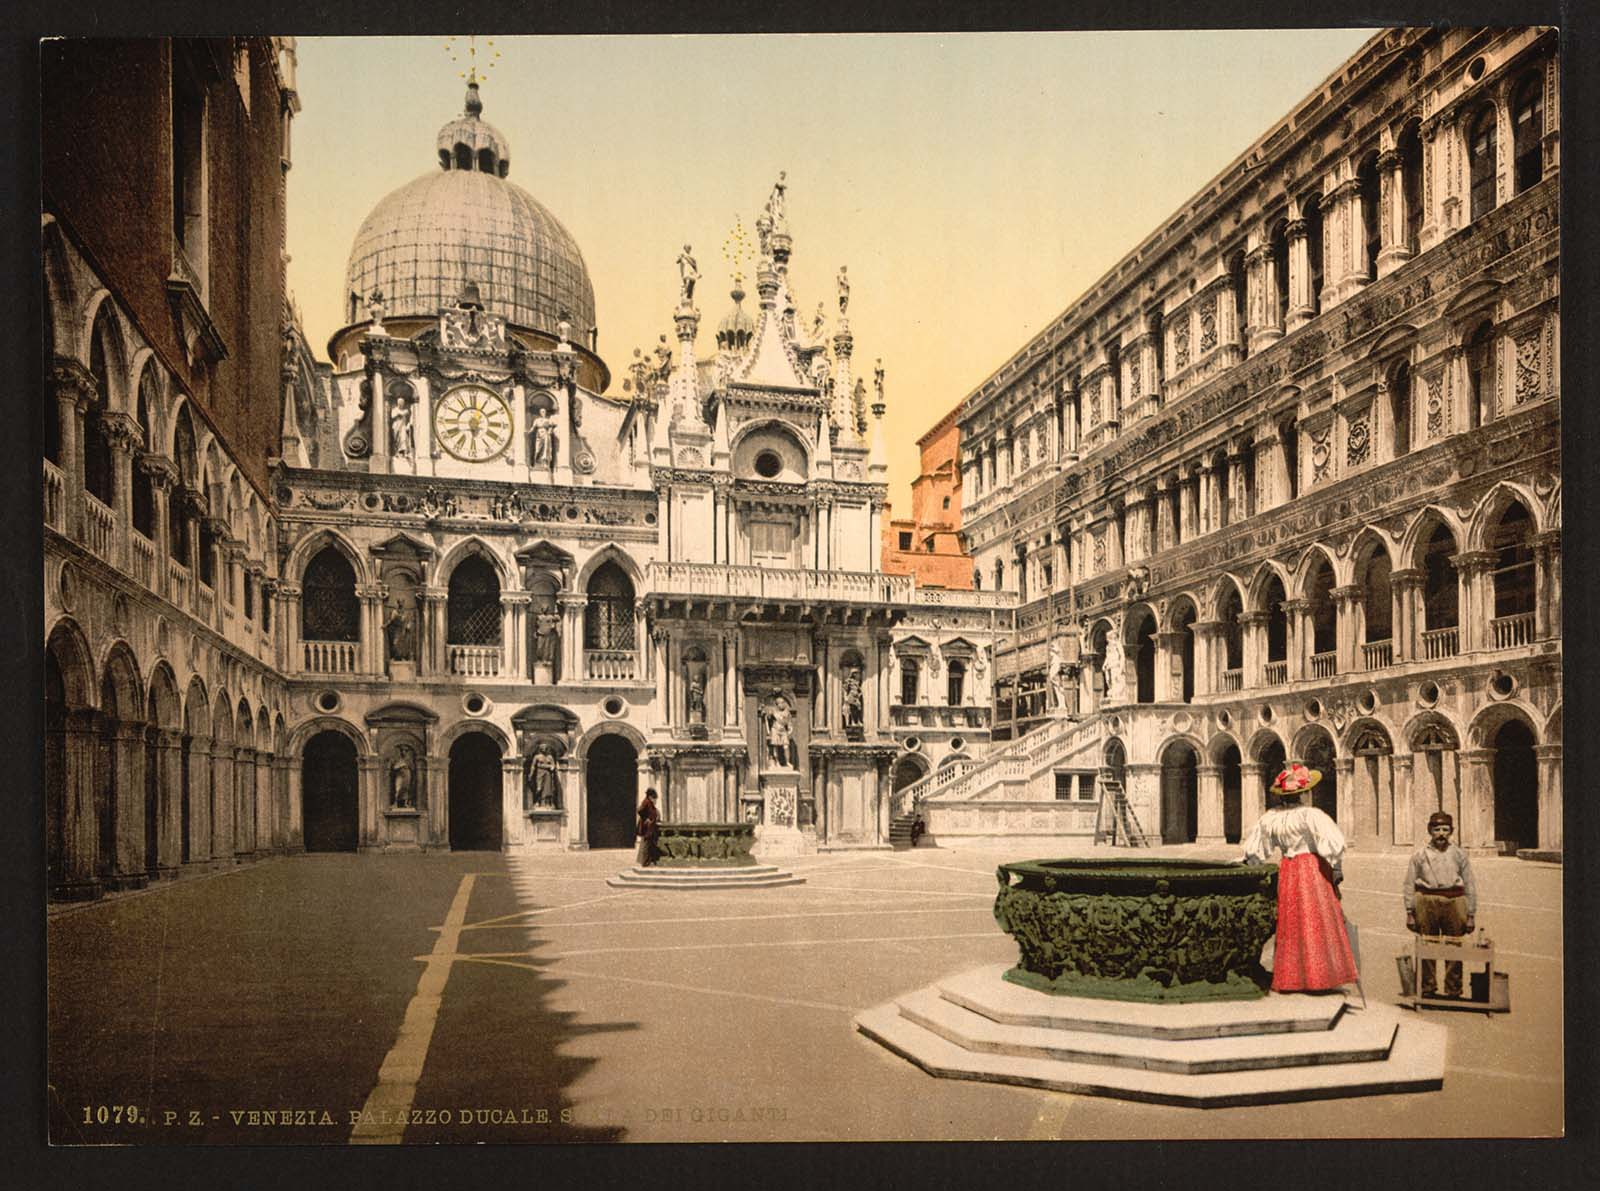 venice-in-beautiful-old-color-images-1890_21.jpg